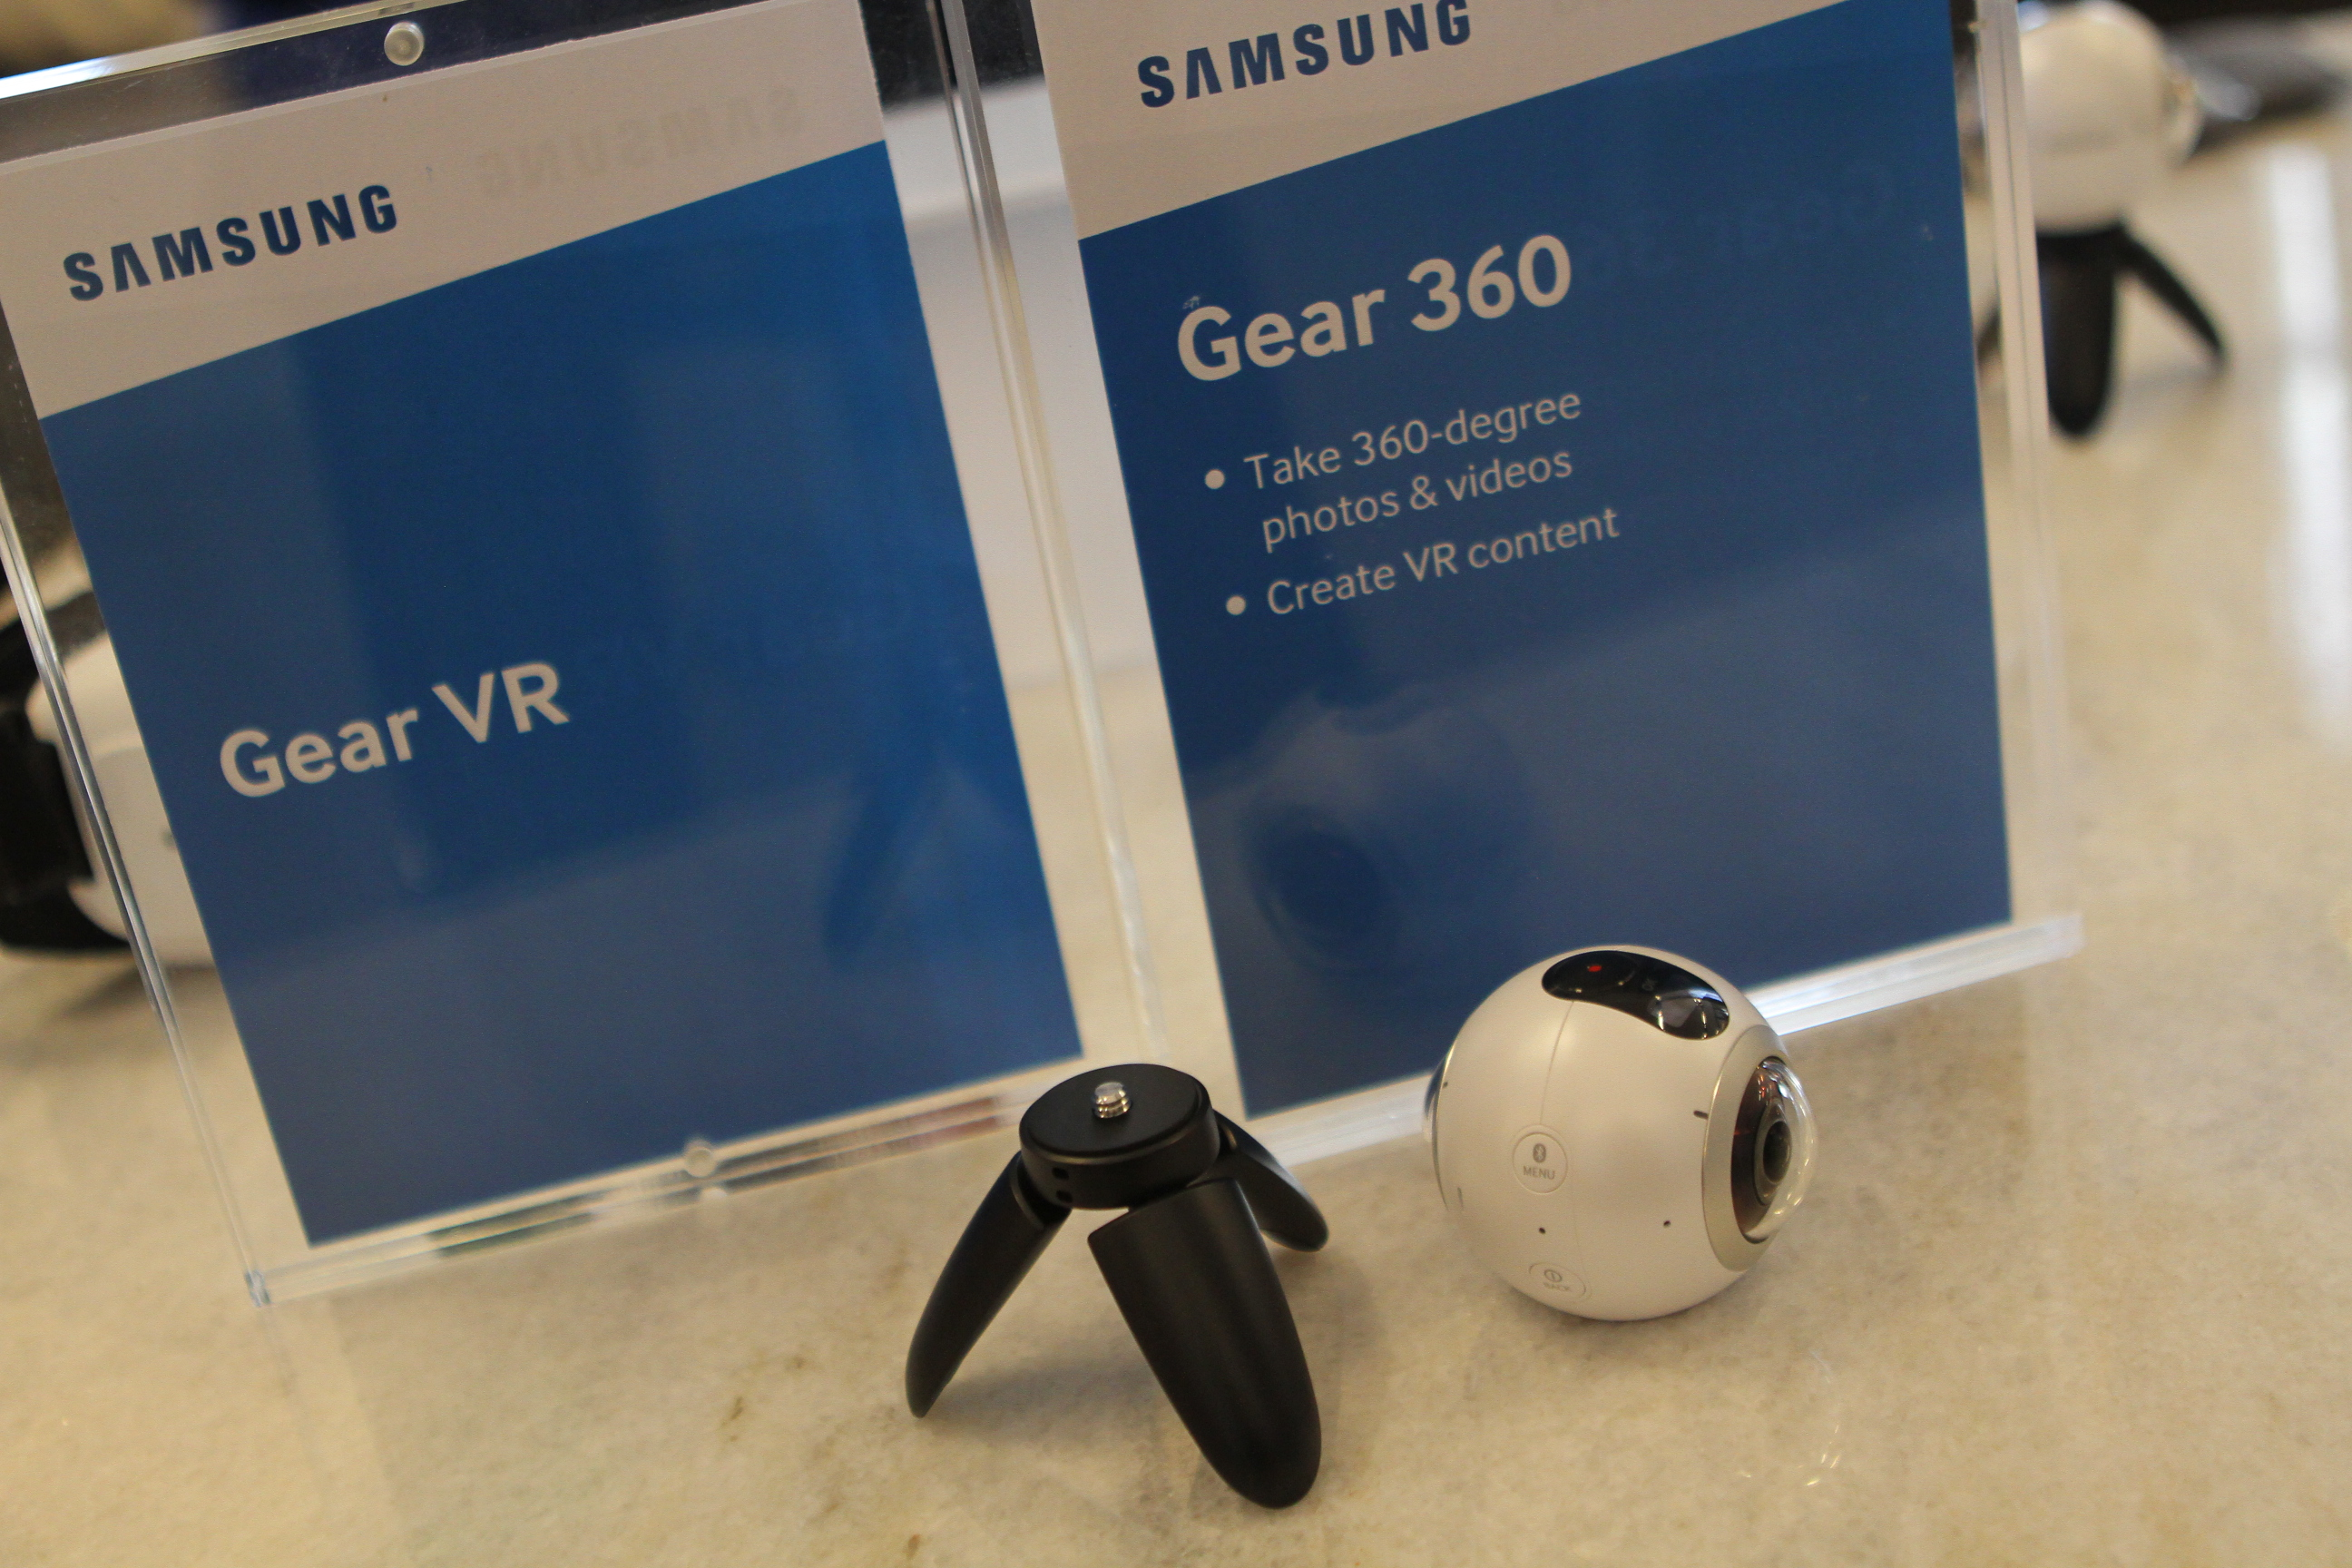 Samsung Gear 360 camera and signage